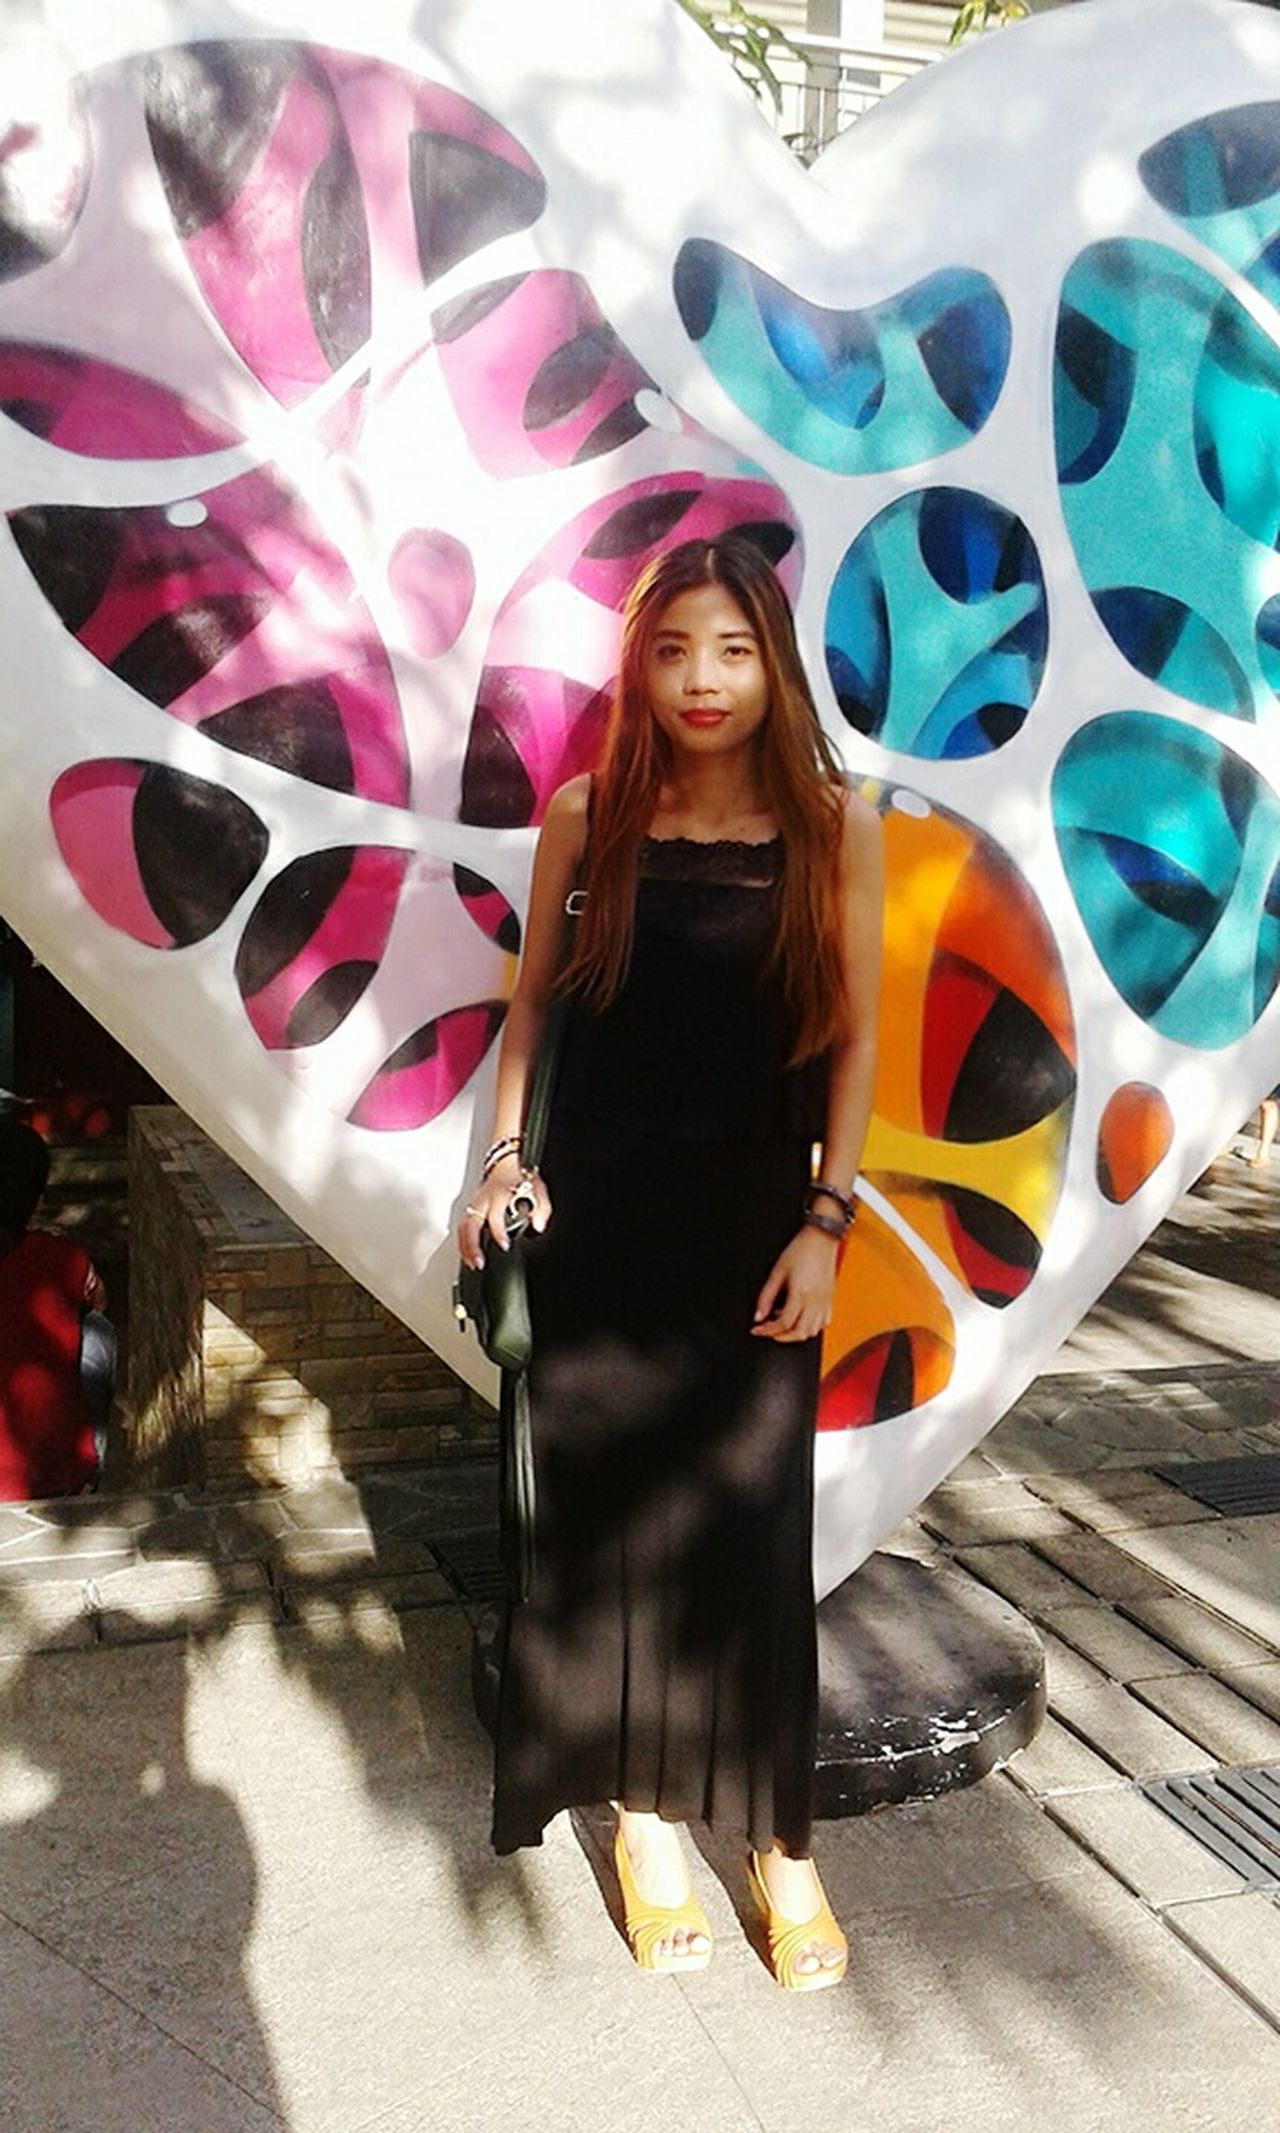 Hi! That's Me Ootd Maxidress Black Dress Its My Birthday  Keeping It Classy Stay True, Be YOU ❥ Just Chillin' LookingCute  KAWAII Me Time ♥ Inspired By Art My Blog http://jennyfashionillustration.jimdo.com